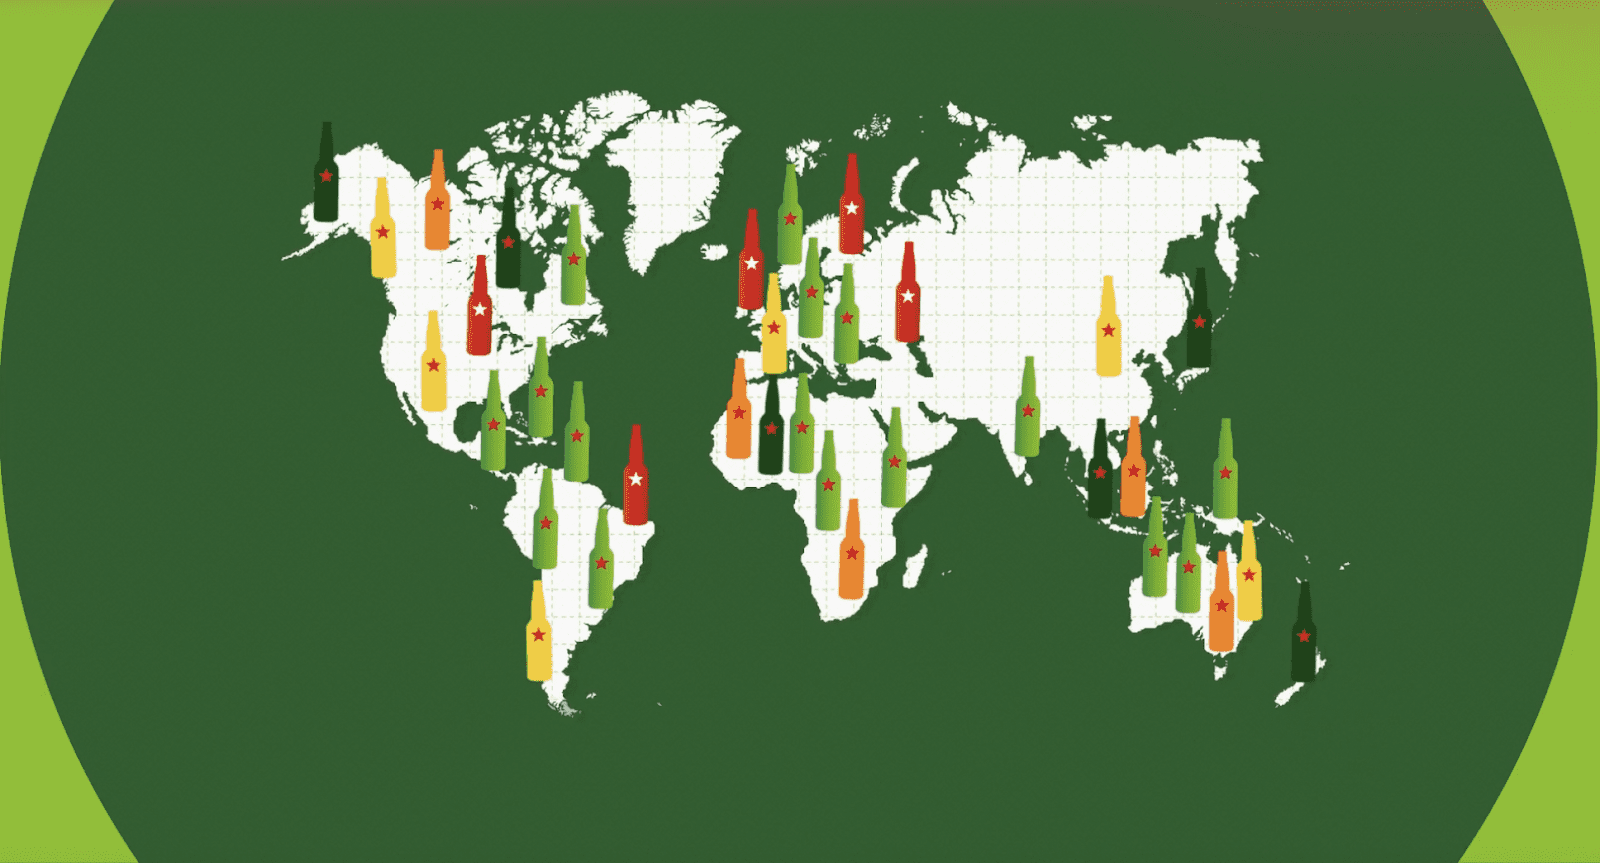 map of the world with multiple small bottles of Heineken positioned on top